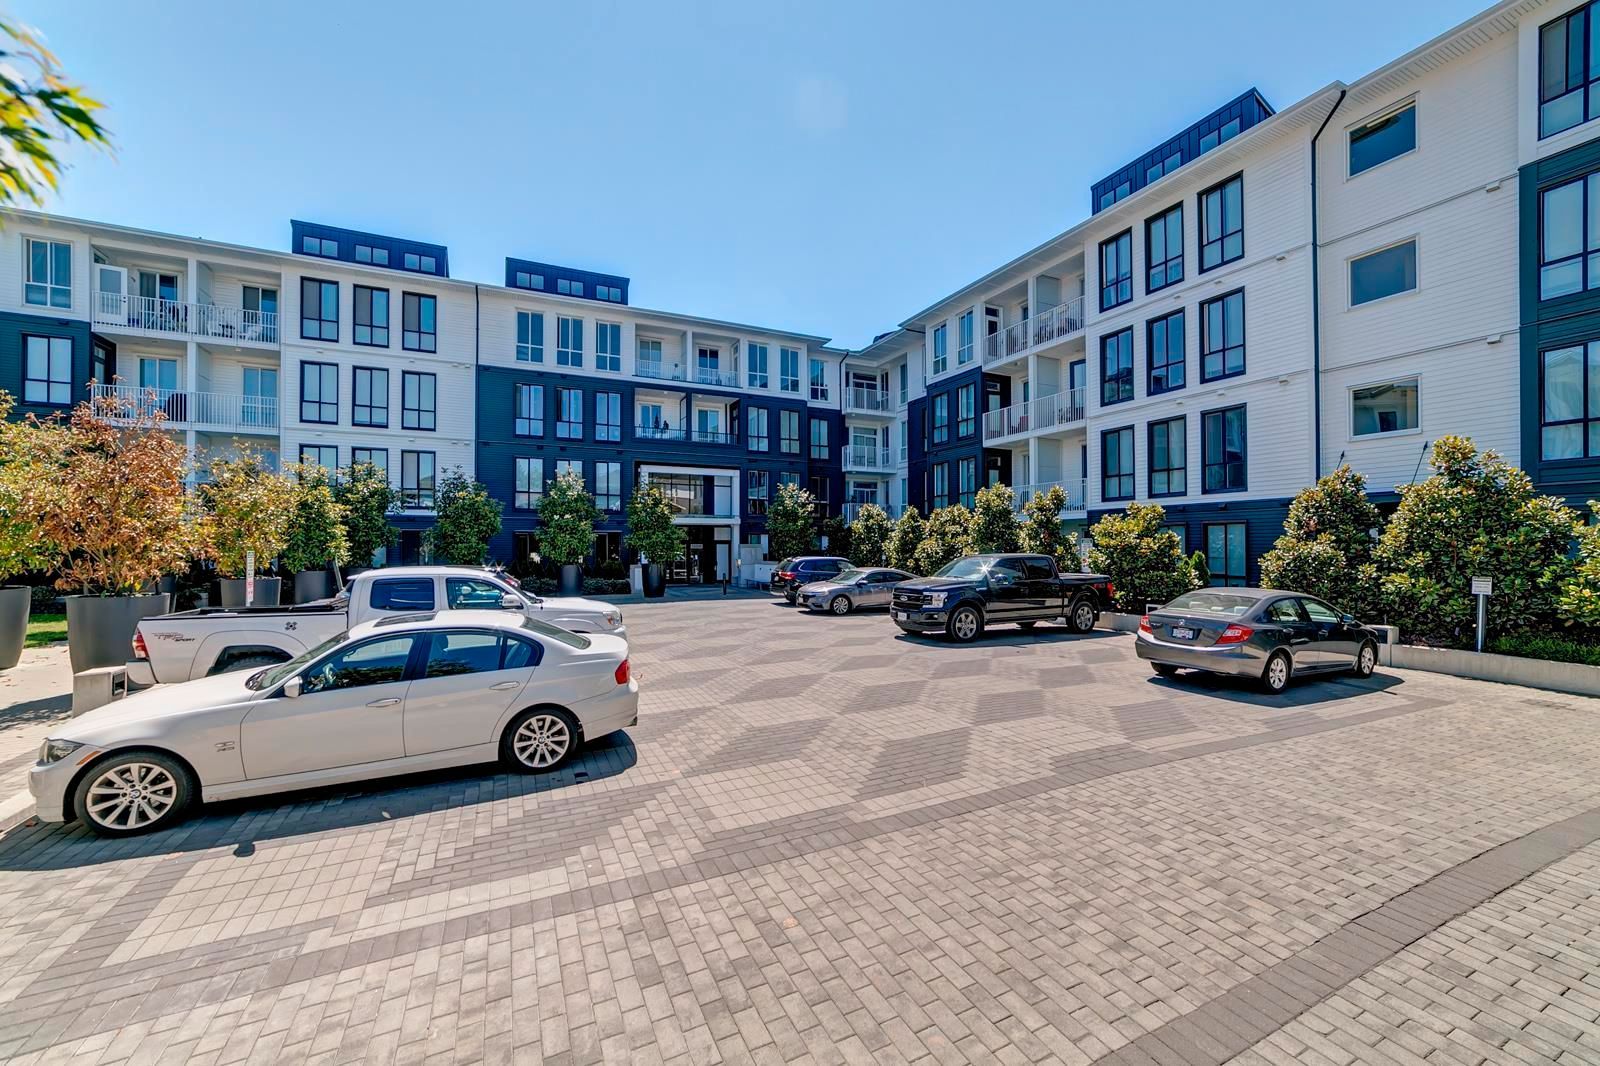 """Main Photo: 328 14968 101A Avenue in Surrey: Guildford Condo for sale in """"Mosaic Guildhouse"""" (North Surrey)  : MLS®# R2603317"""